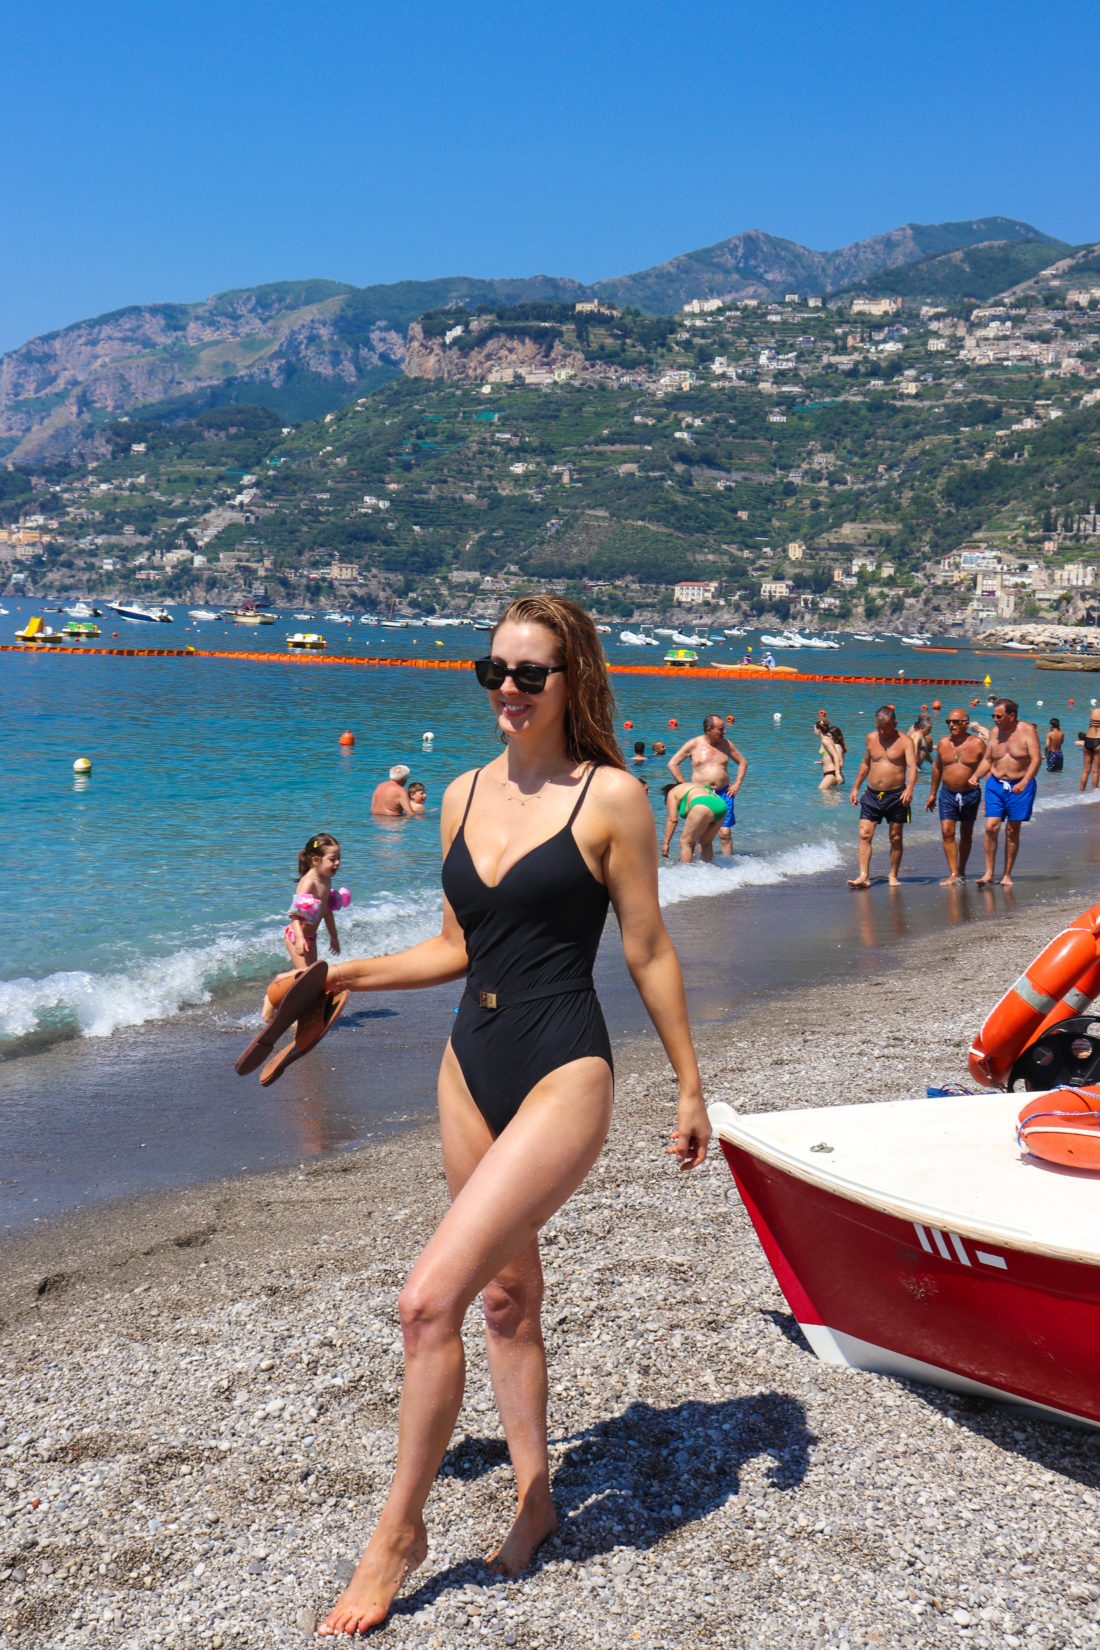 Eva Amurri Martino on the beach in Amalfi